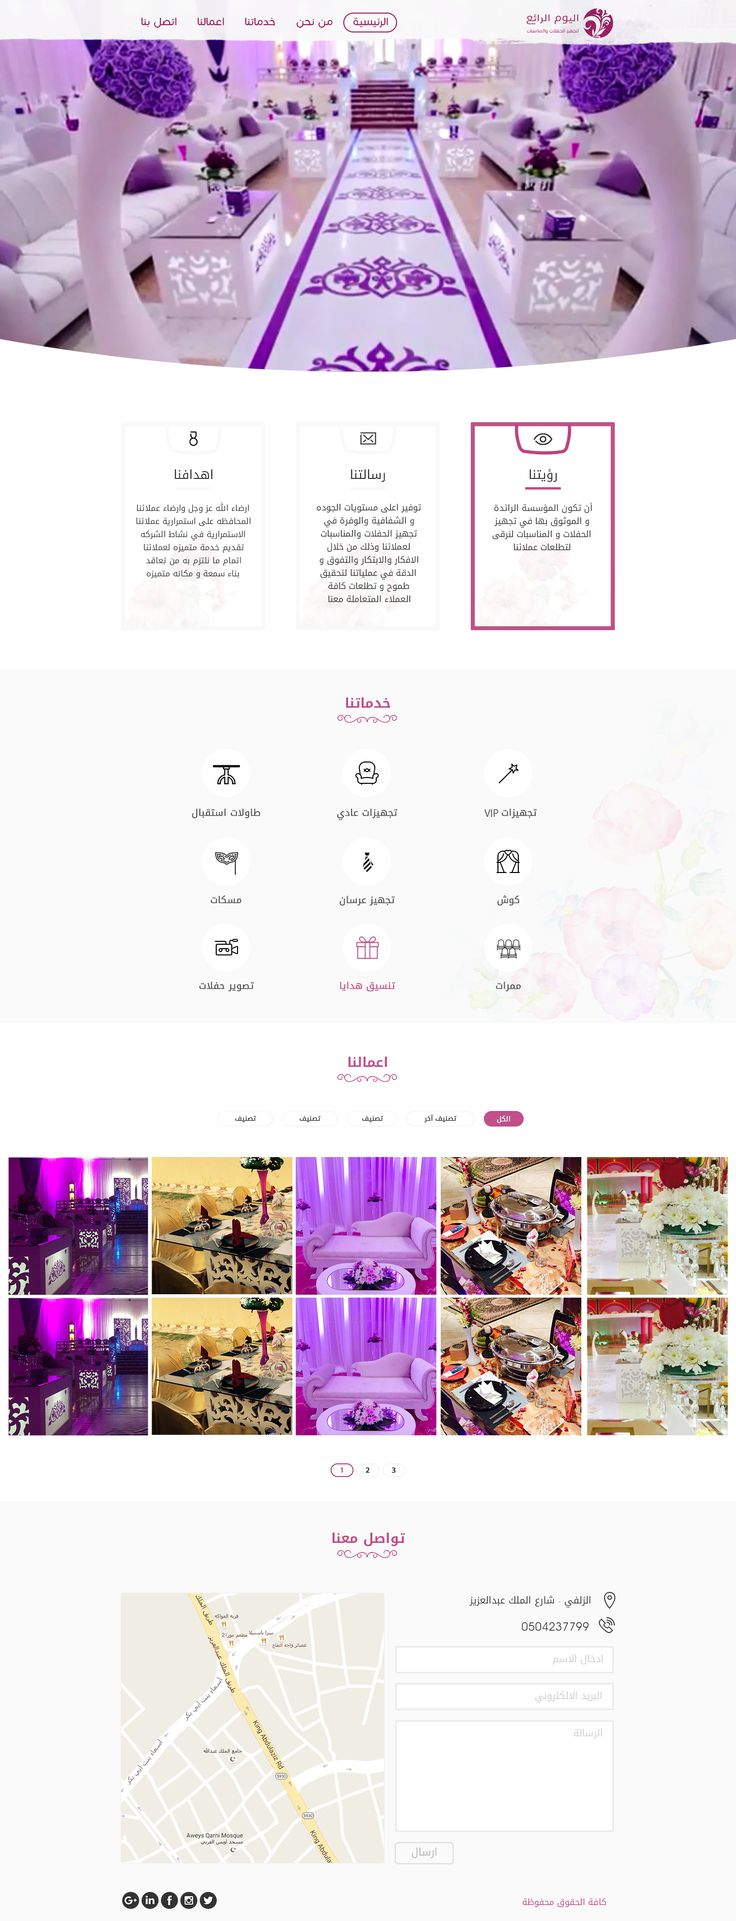 """Check out my @Behance project: """"Wedding Halls - Site Redesign"""" https://www.behance.net/gallery/45852225/Wedding-Halls-Site-Redesign"""